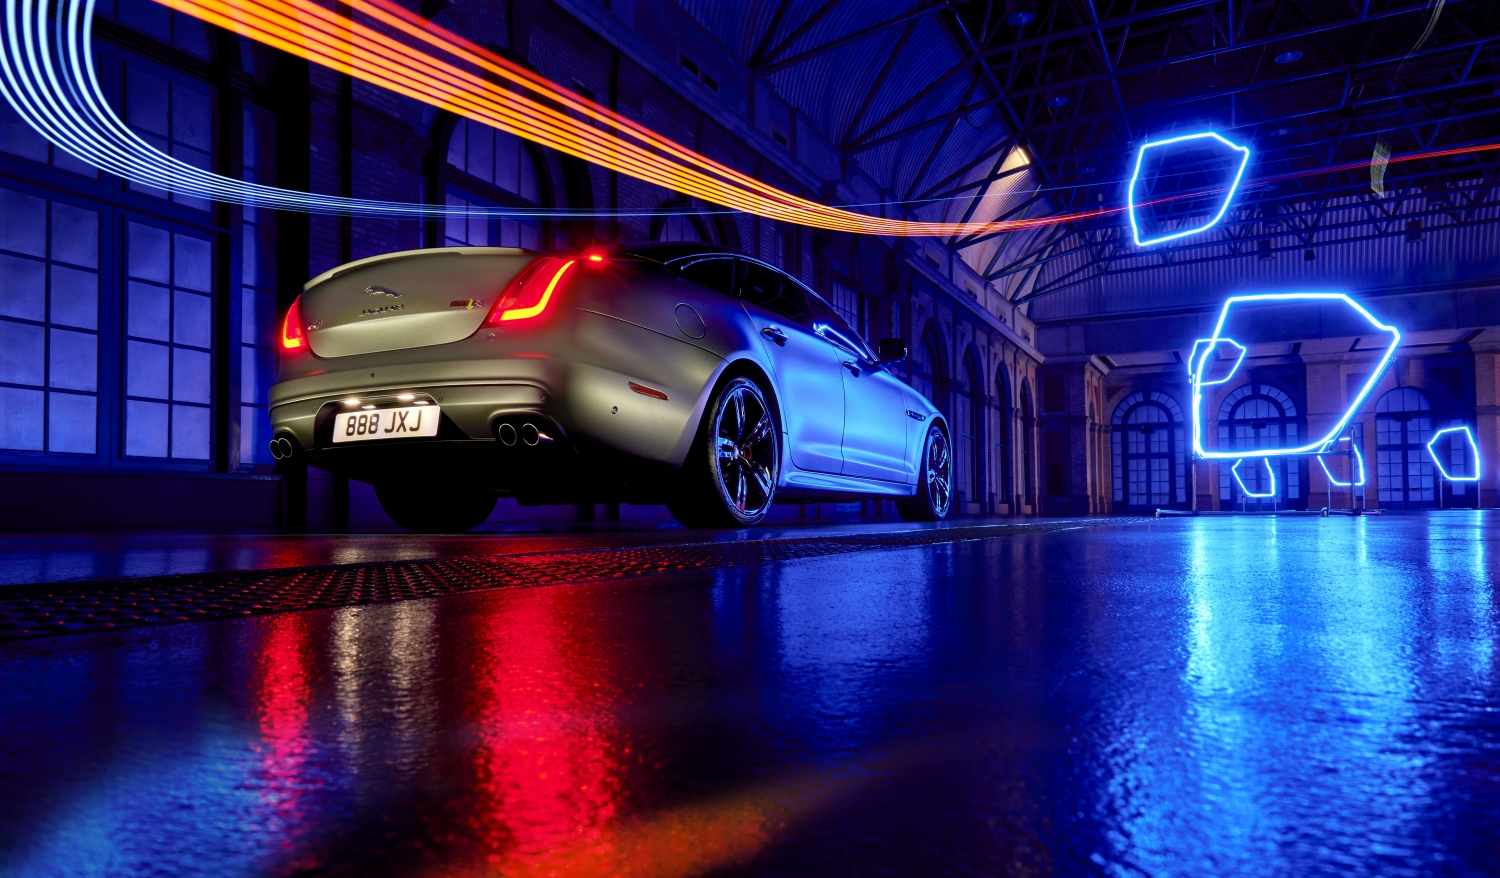 EMBARGOED UNTIL 0900 BST MONDAY 18 SEPTEMBER 2017  PLAY A GAME OF DRONES WITH THE JAGUAR XJ